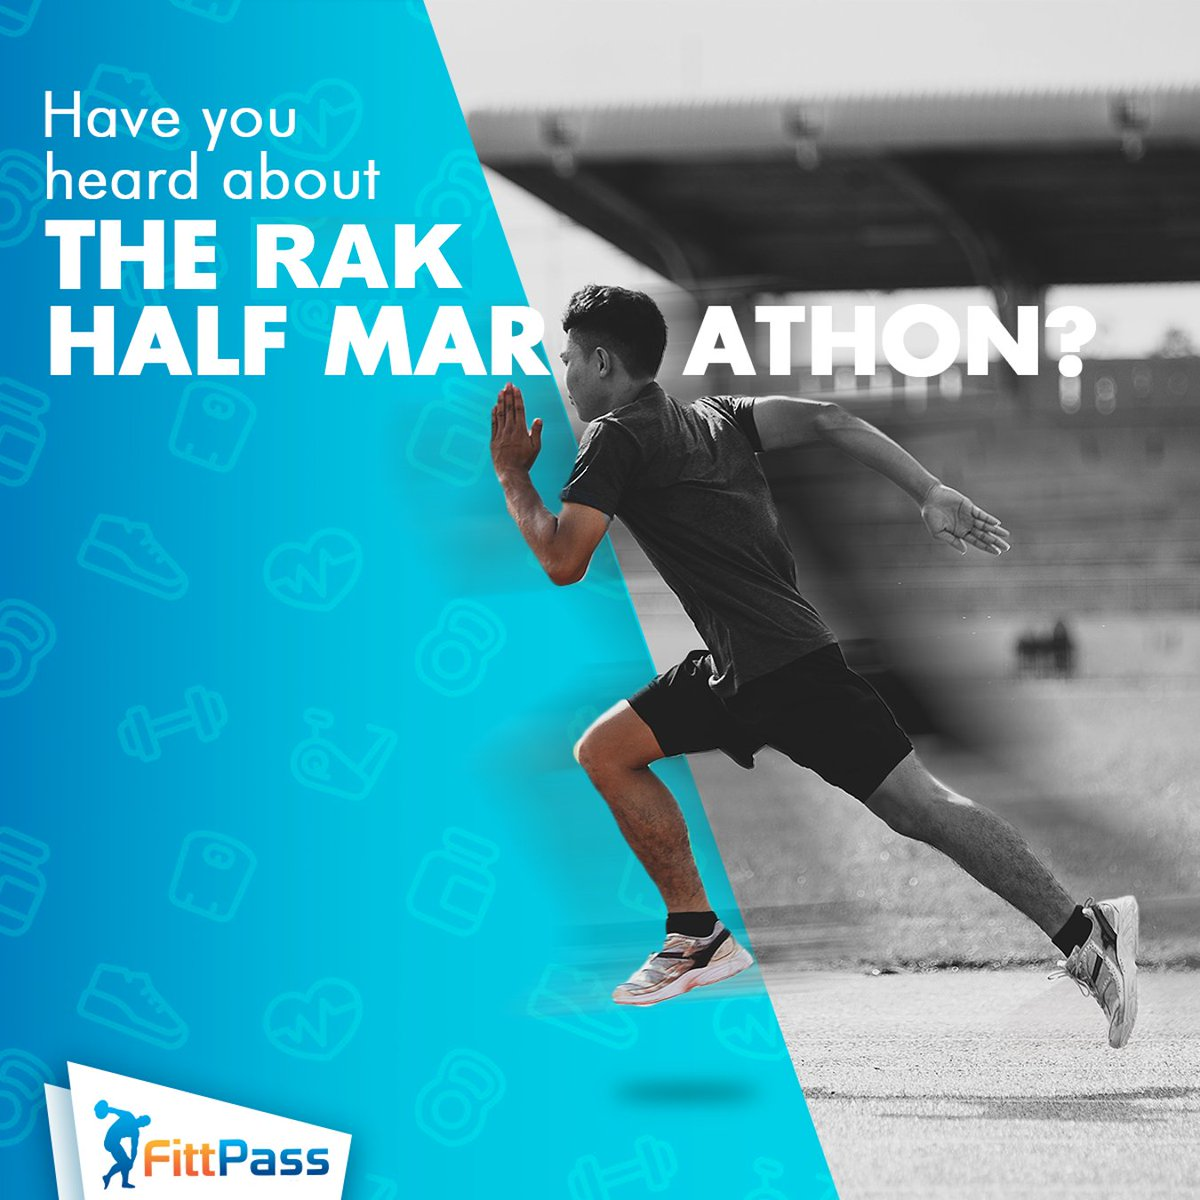 The world's fastest half marathon is happening in Ras al Khaimah on the 21st of February, are you ready for it?   Register before the 15th of Feb to participate => https://snip.ly/lfmedx   #RAKHalfMarathon #UAEMarathons #MarathonTraining #FittPass